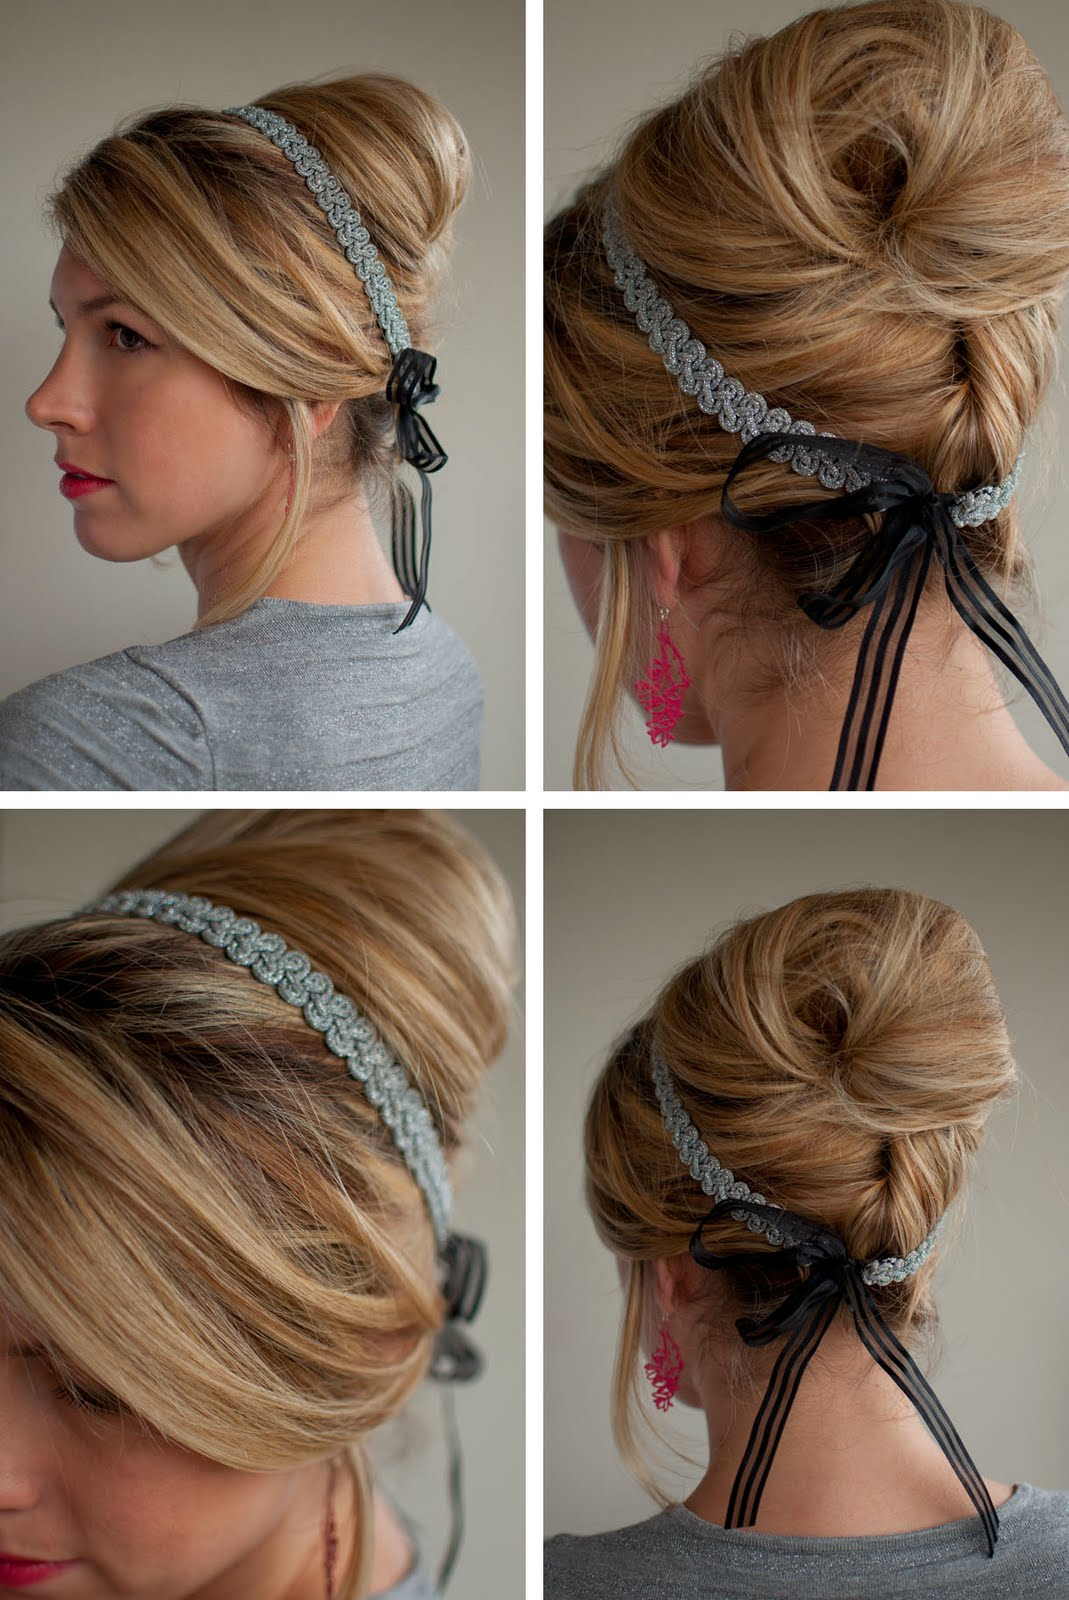 30 days of twist & pin hairstyles – day 15 - hair romance